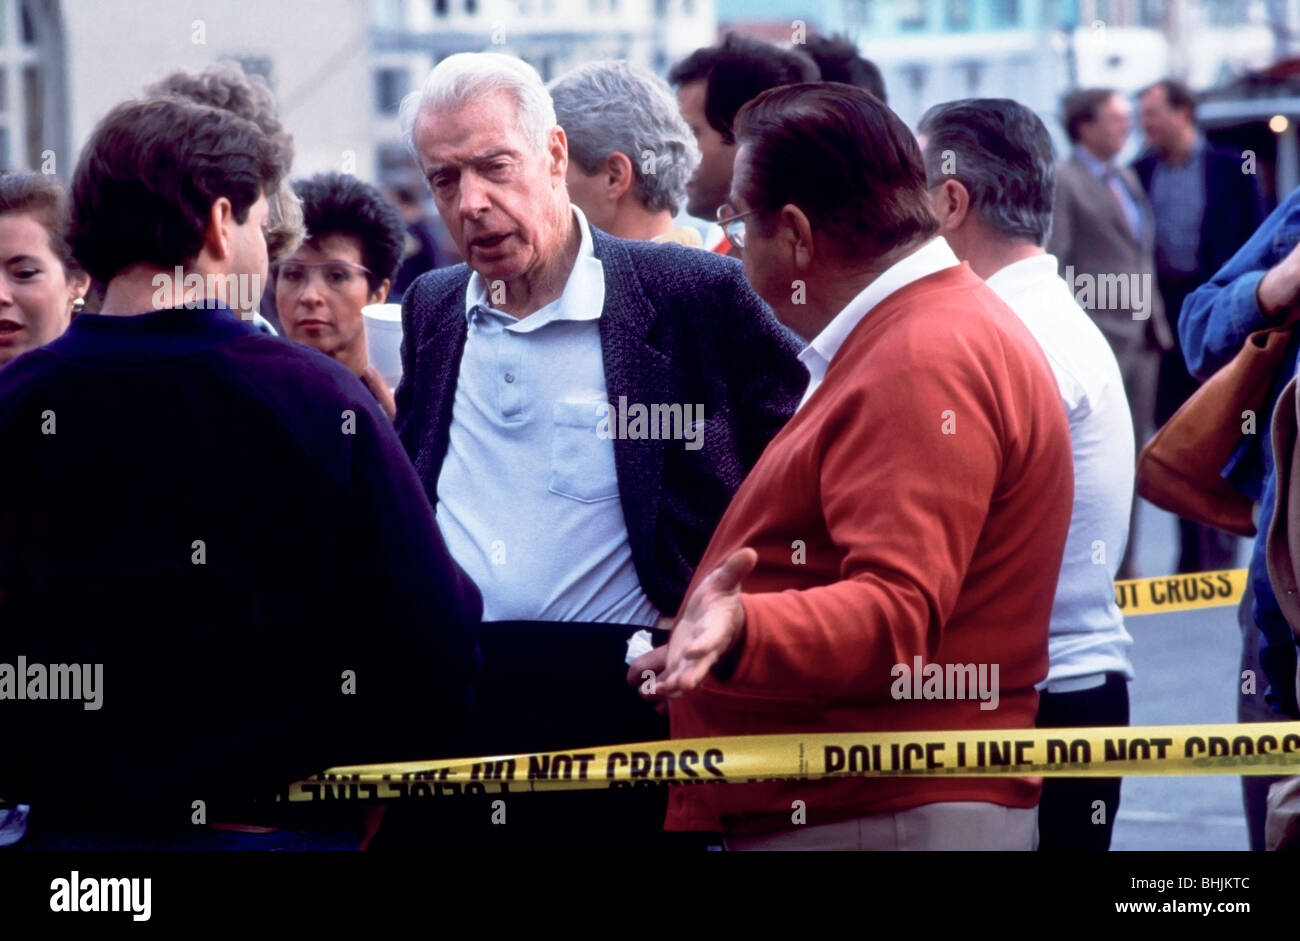 baseball legend joe dimaggio at a red cross center in the marina district after the 1989 san francisco earthquake